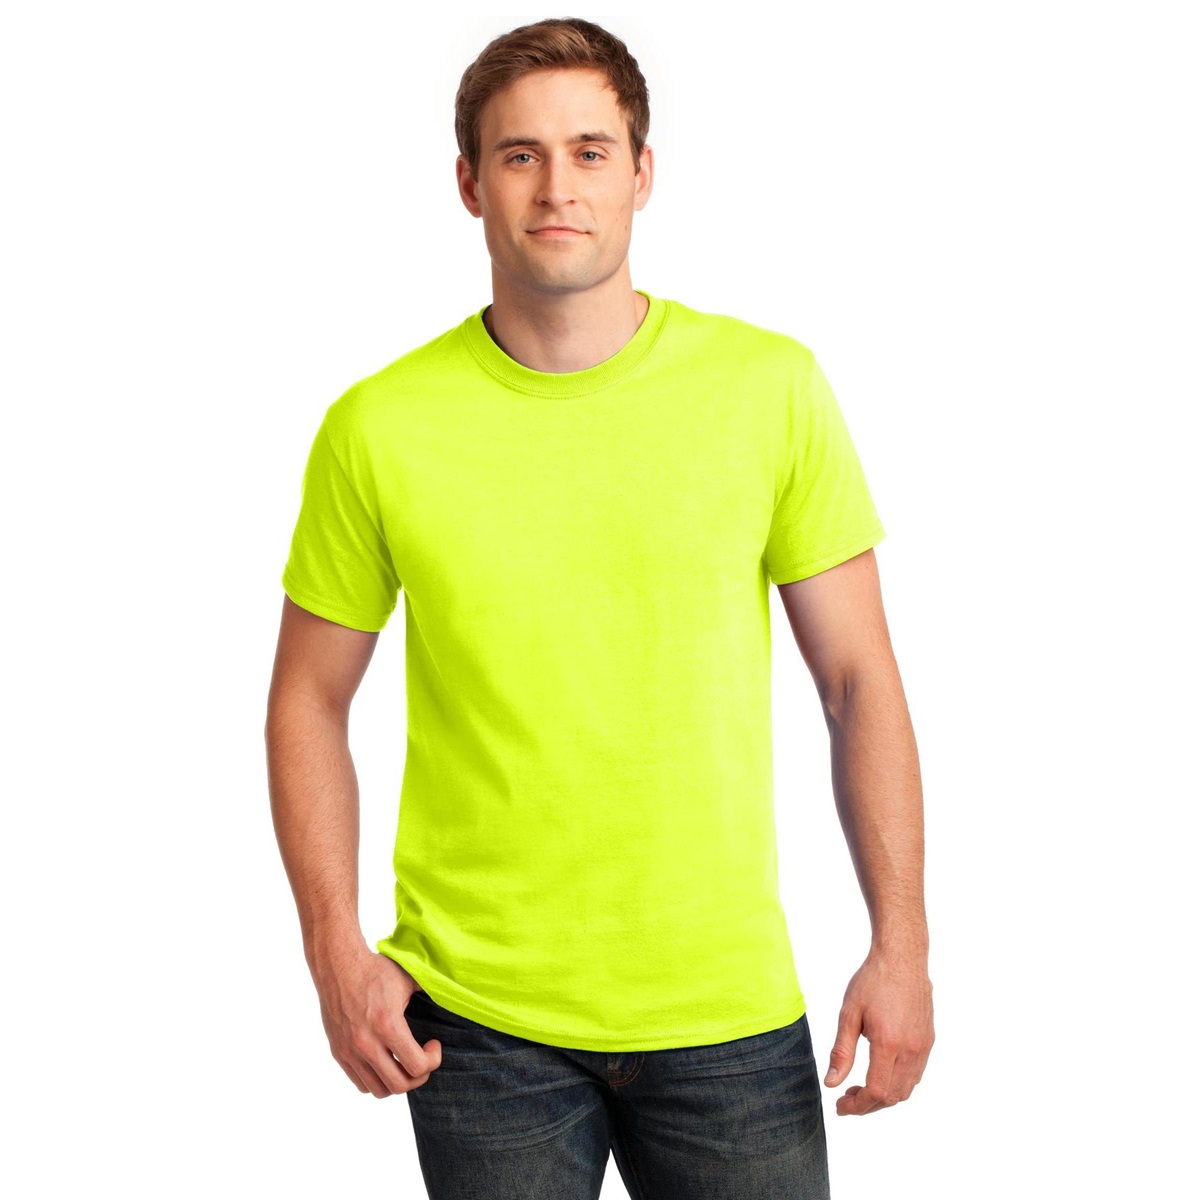 University of Akron Police Academy Safety Green Shirt